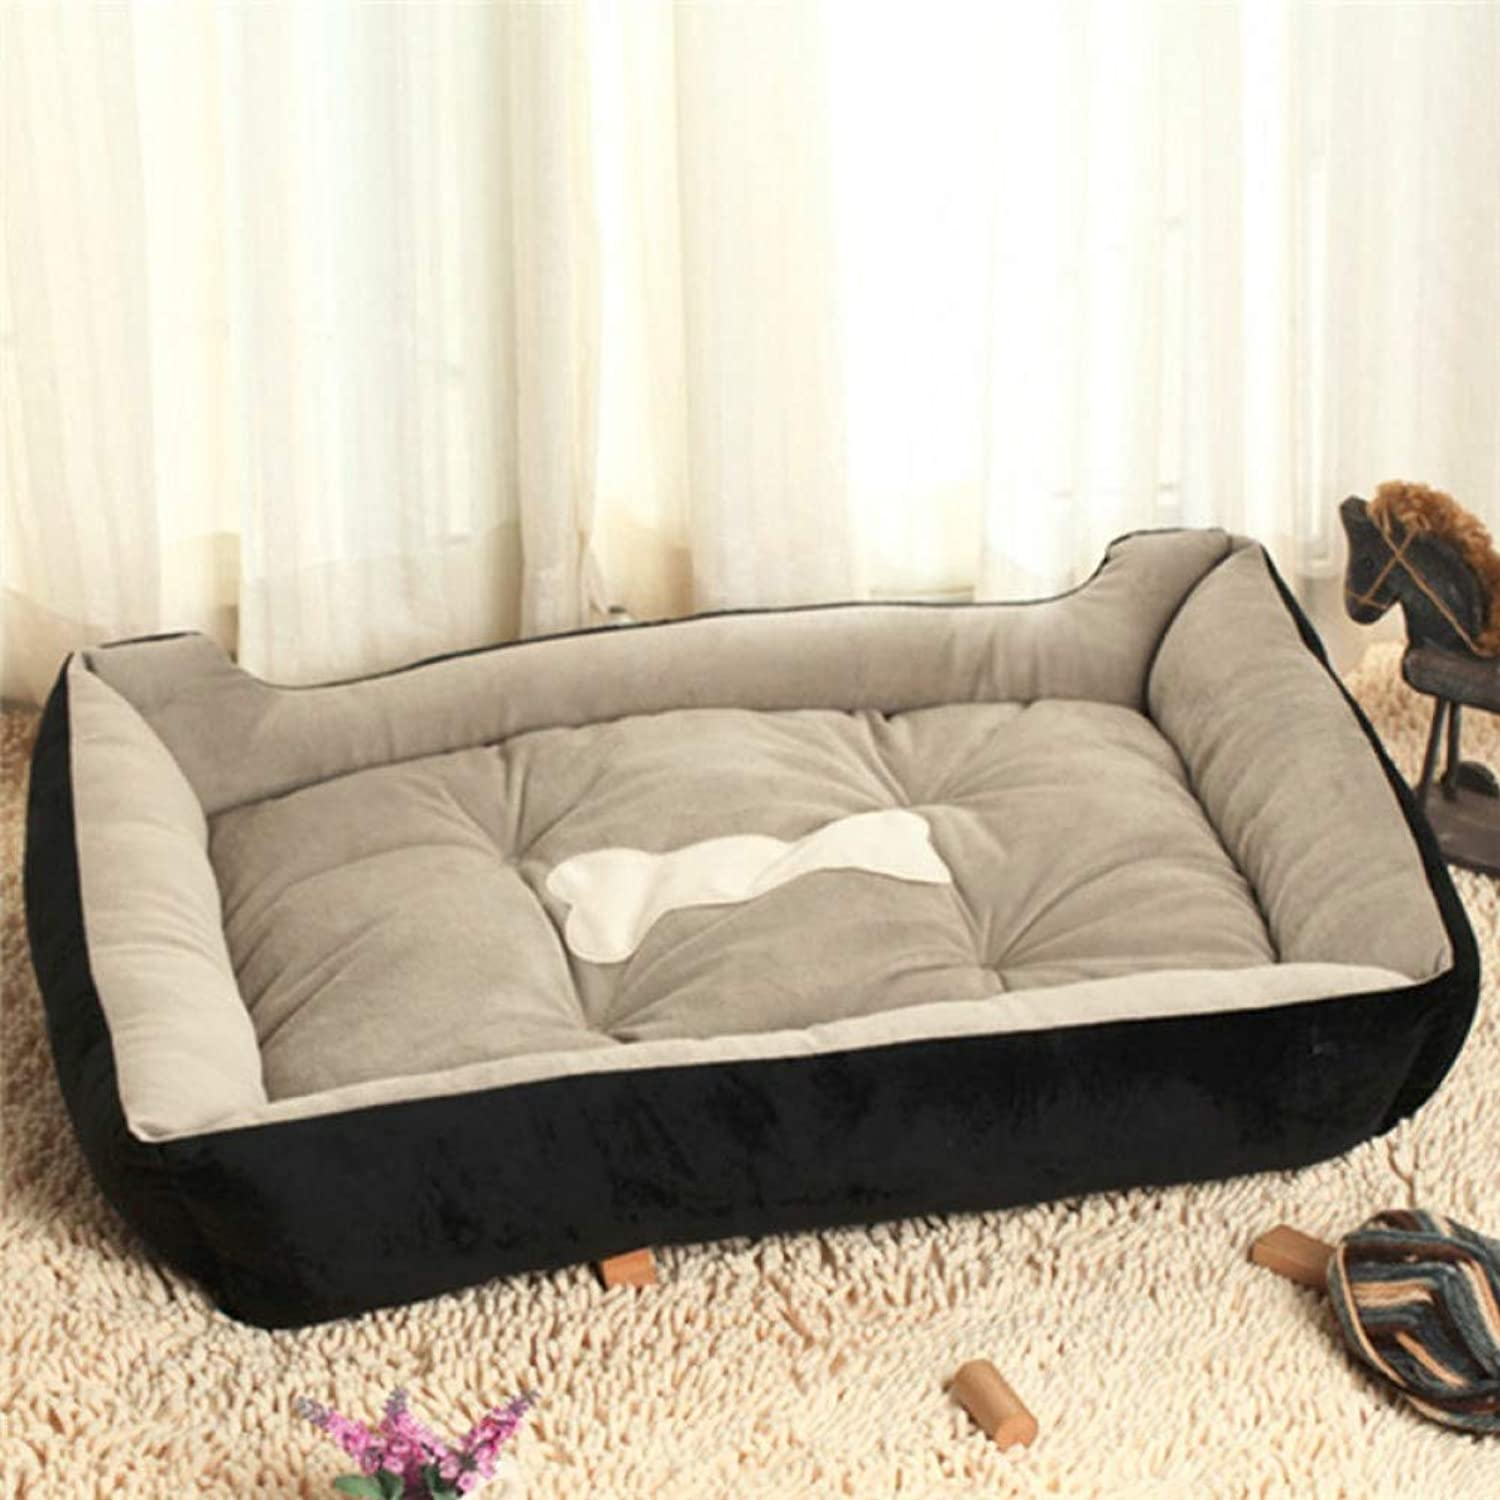 Big Size Dog Couch Cozy Dog Lounger Sofas Samoyed Bulldog Bed House XL Bed Black Brown Spring Summer Autumn Winter Use